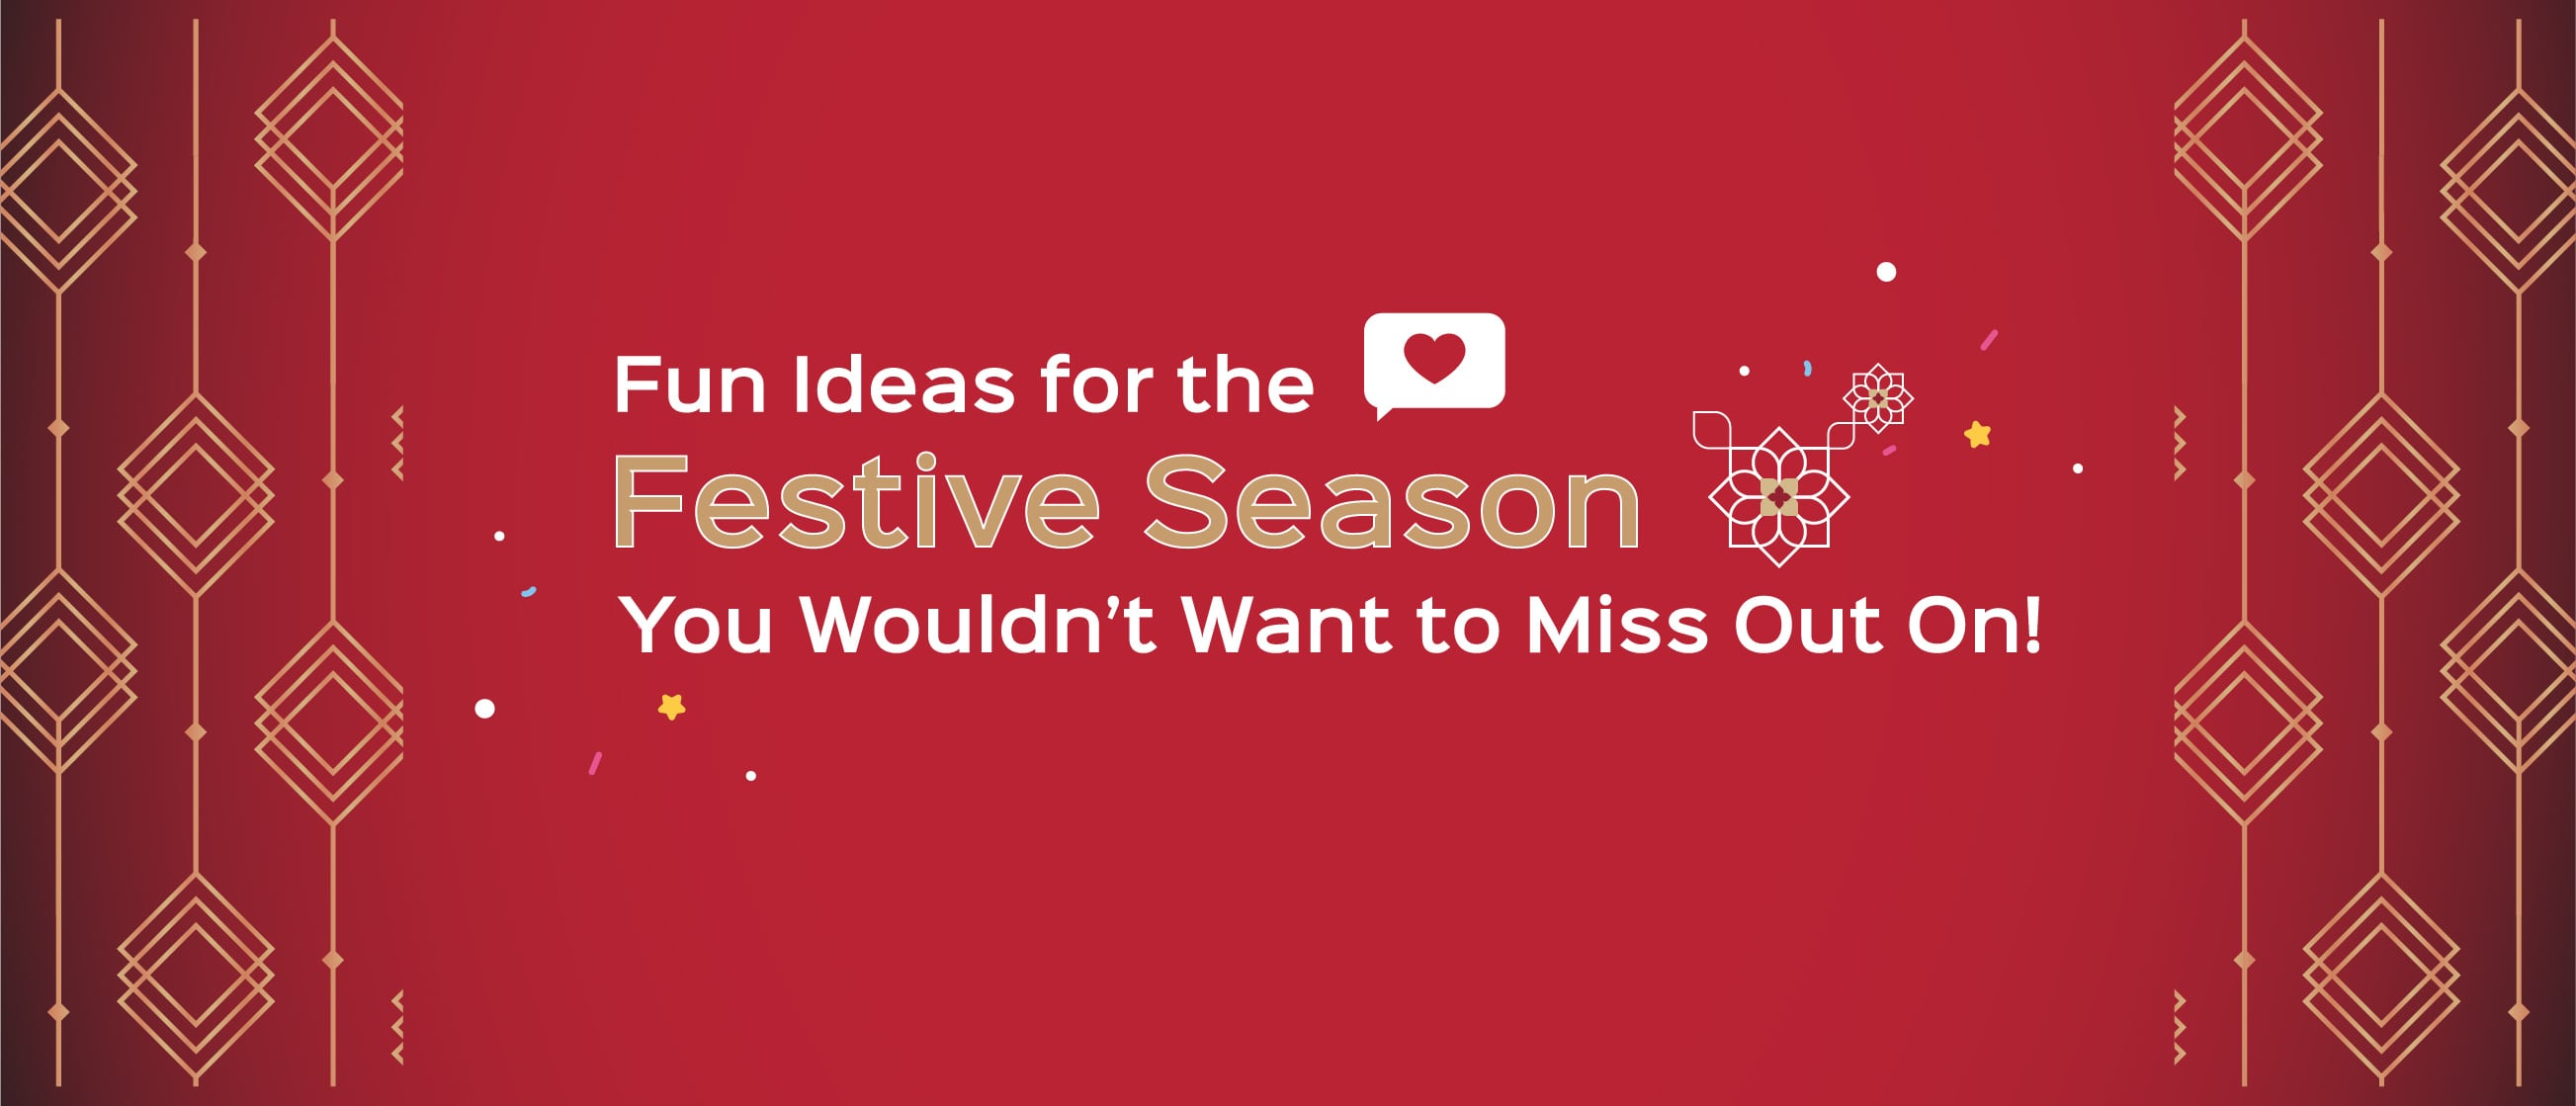 Fun Ideas for the Festive Season You Wouldn't Want to Miss Out On!